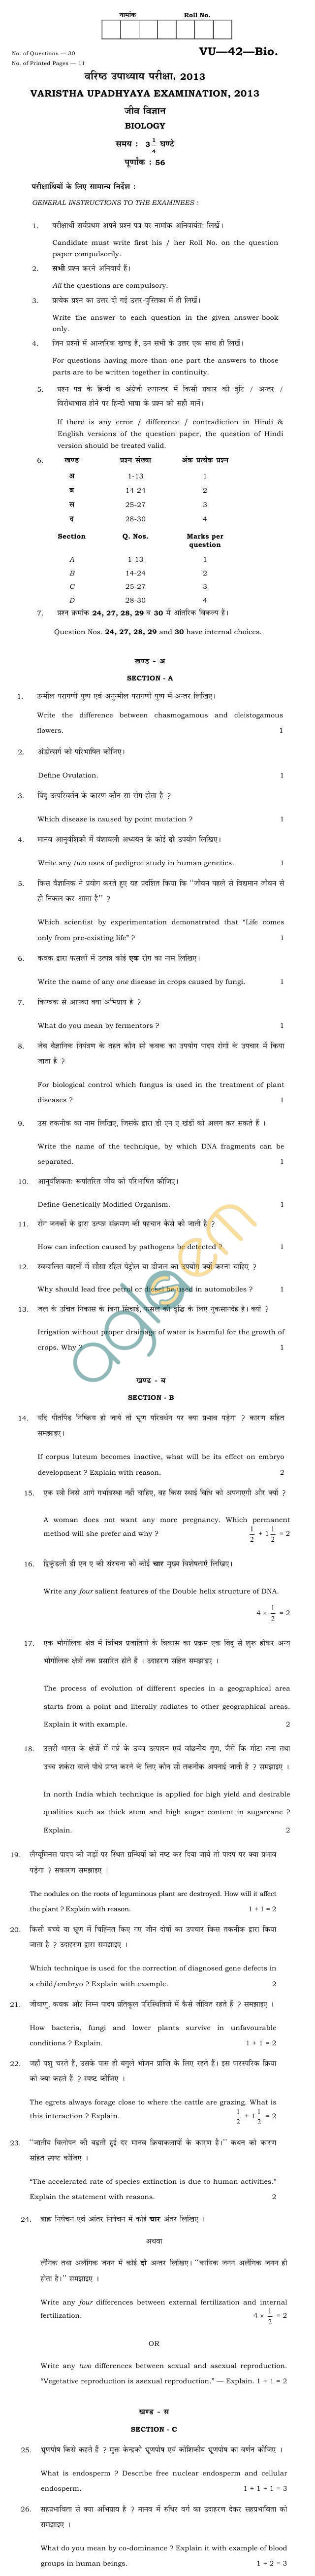 Rajasthan Board V Upadhyay Biology Question Paper 2013